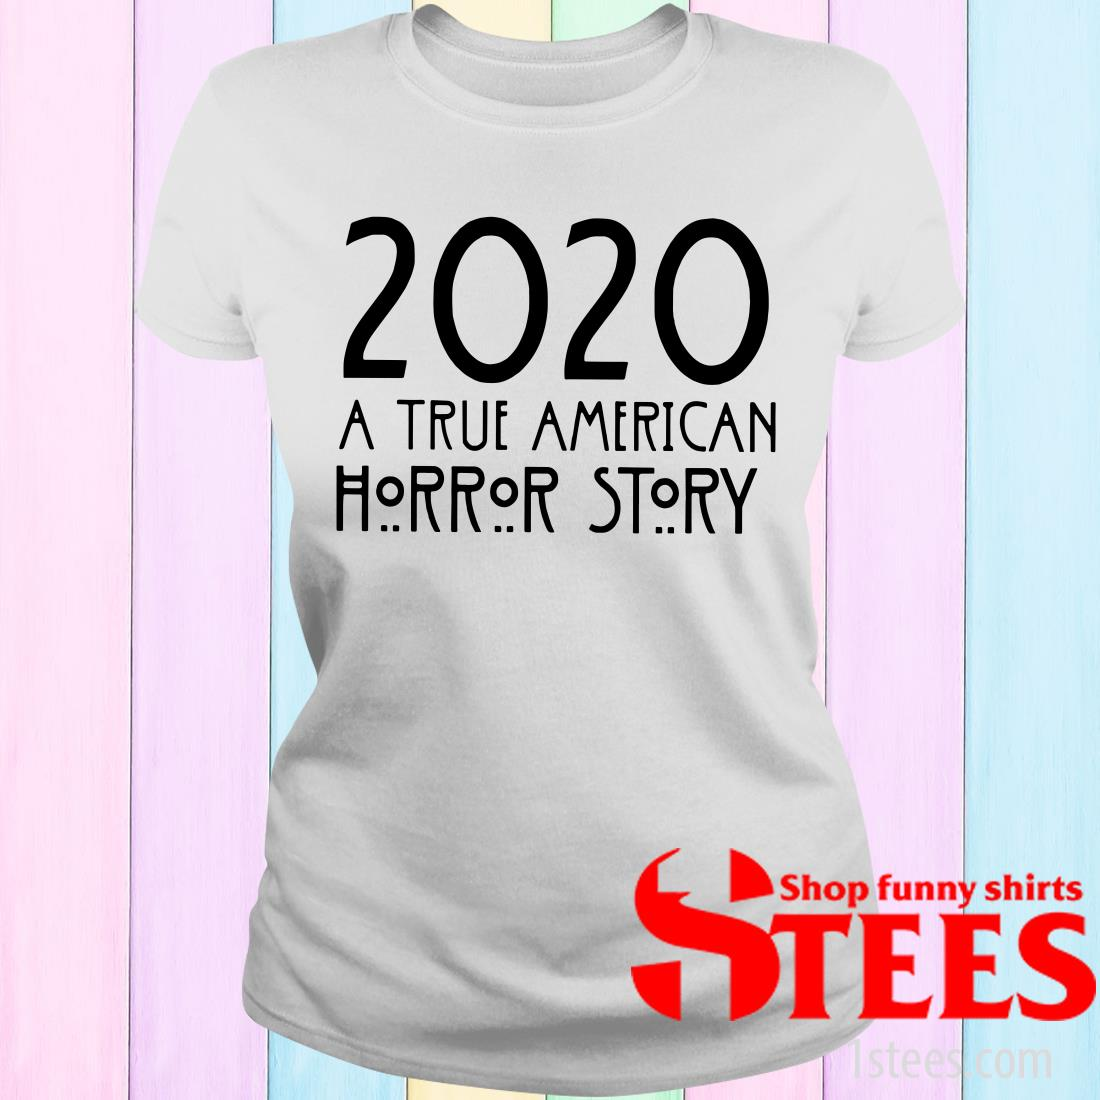 2020 A True American Horror Story Women's T-Shirt